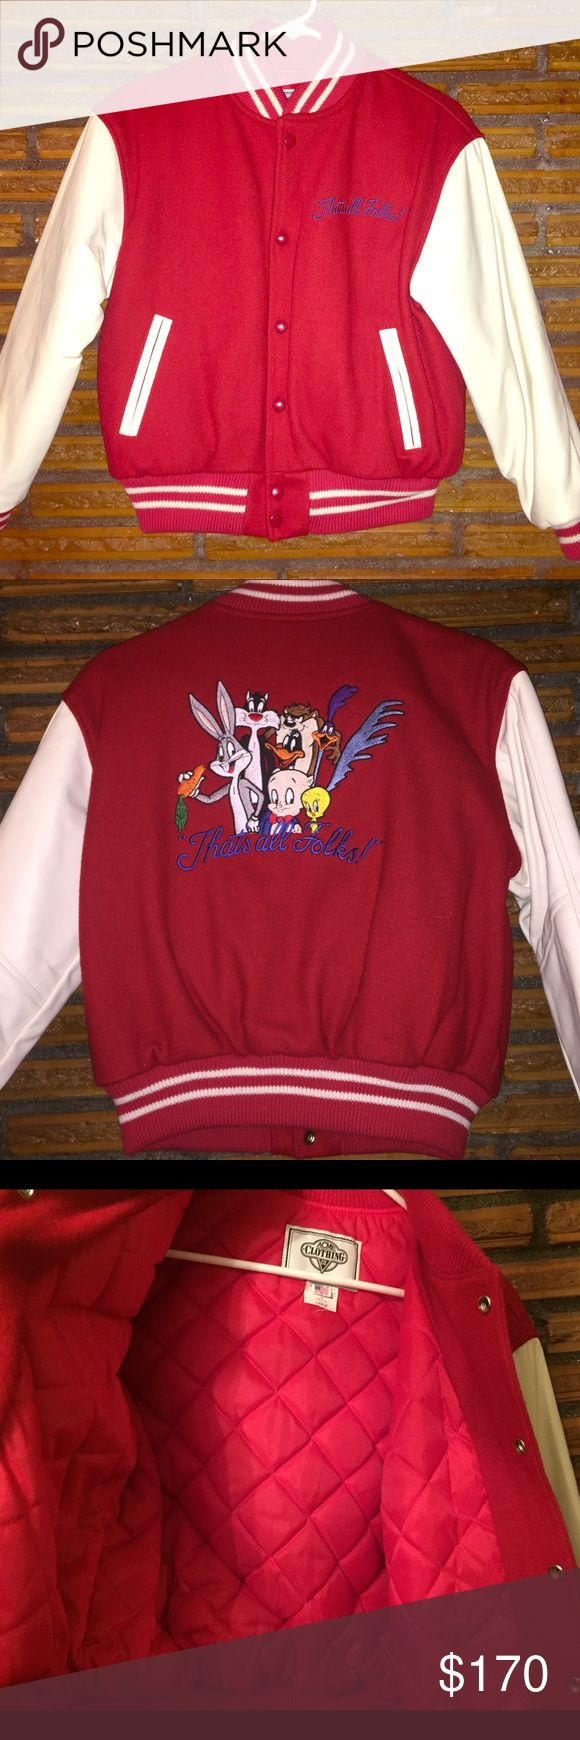 💔 RARE 💔 Looney Tunes leather letterman jacket L This is an extremely rare authentic Looney Tunes jacket from the 60's/ 70's. I guarantee you won't find another remotely close! This bad boy was in air tight bag for 40+ years. It is in pristine condition. It's a youth large, which equates to a youth 10/12. There are no cracks in the leather, it is cream colored and gorgeous! The red fabric is a wool blend, and the tag says MADE IN USA. This is most definitely one of a kind. If you have any…